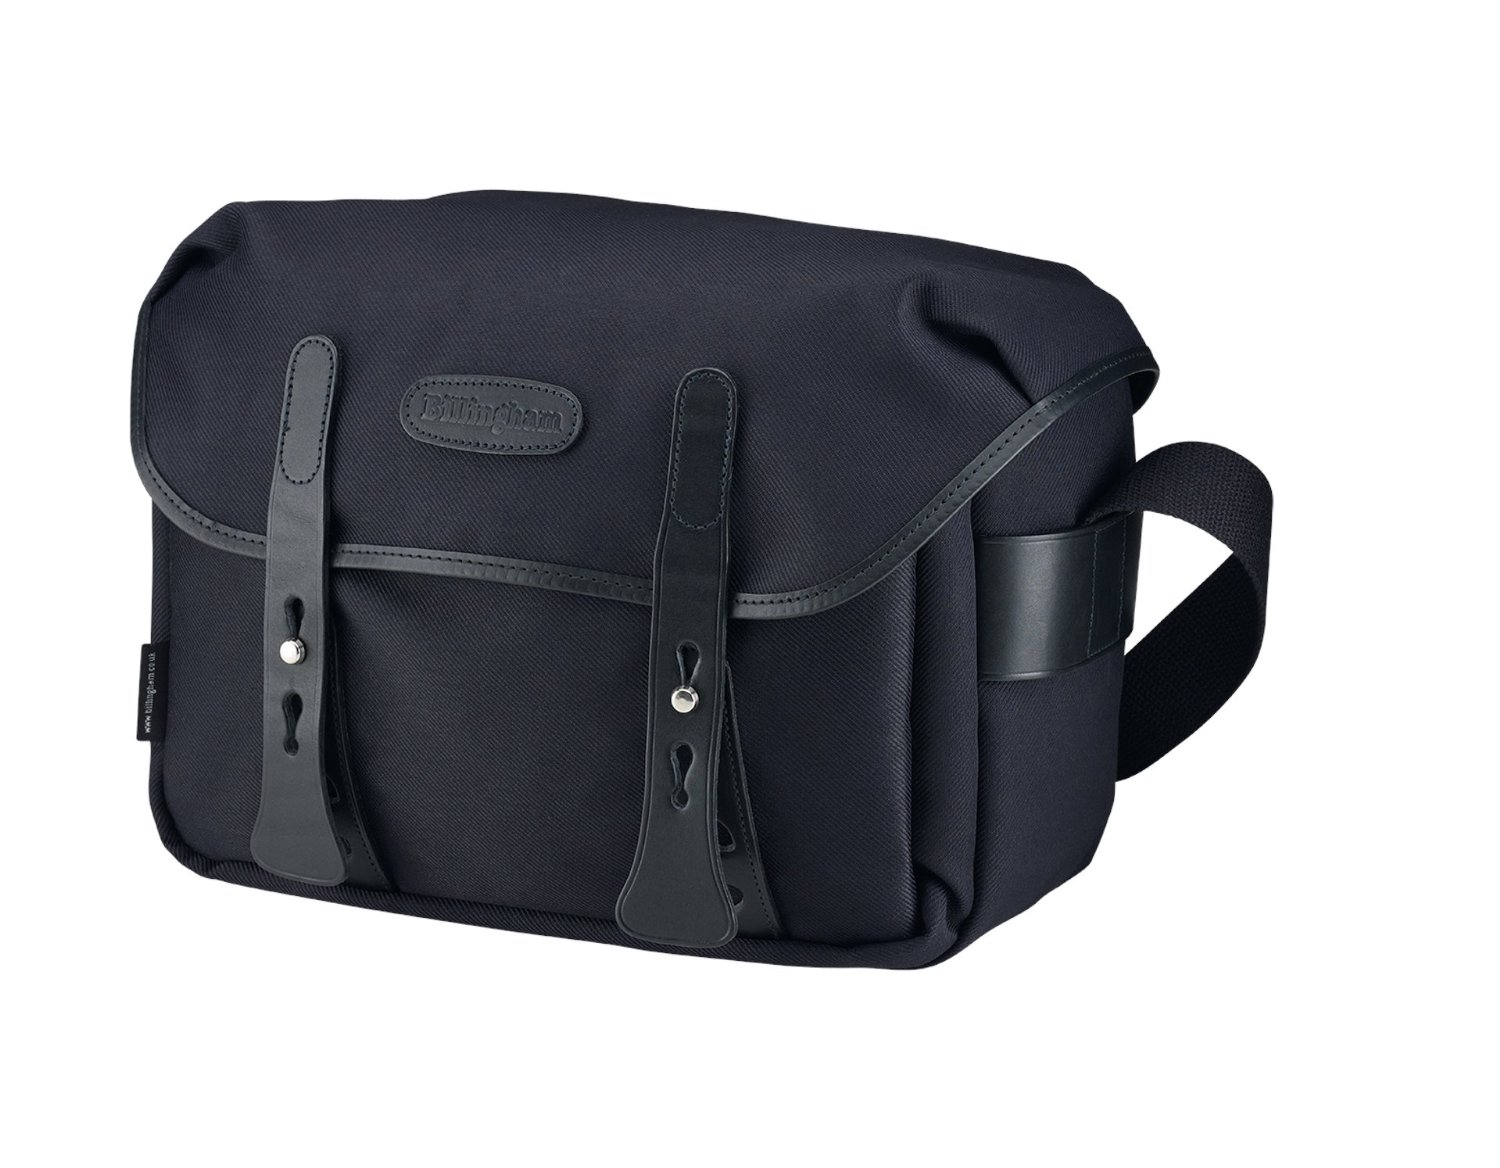 Cheap Billingham 550 Camera Bag Find Hadley One Black Canvas Tan Leather Get Quotations F Stop 14 Fibernyte With Trim